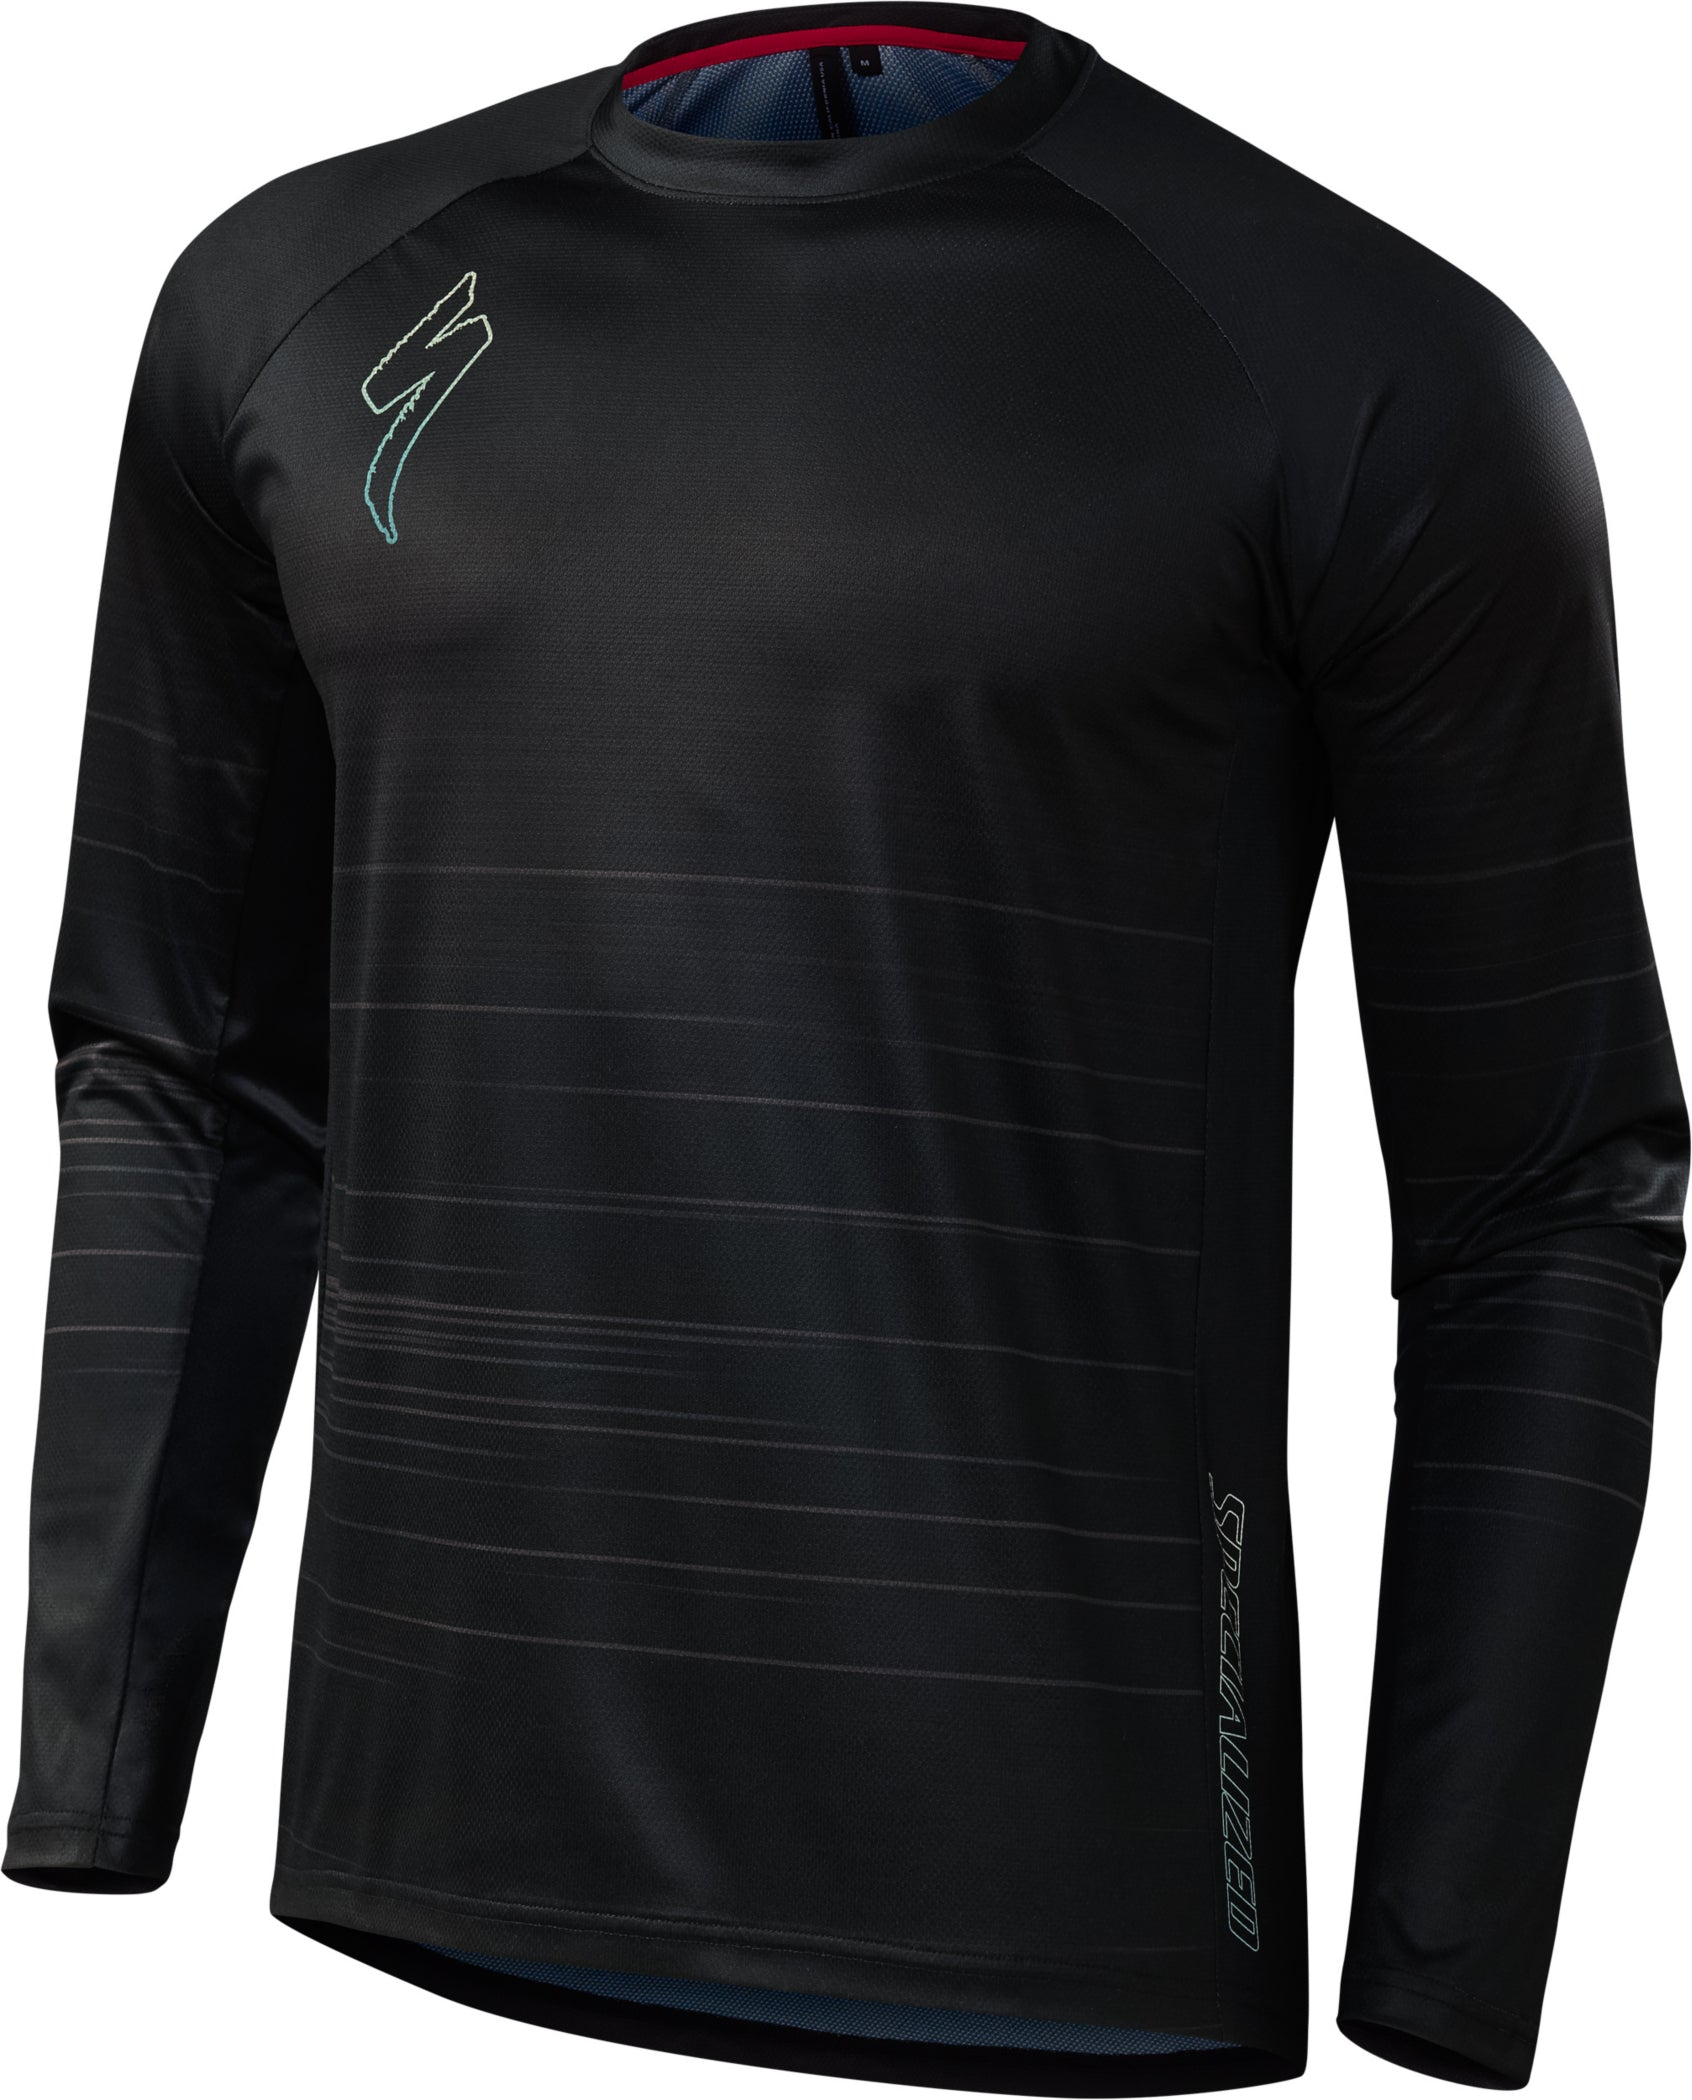 Demo Long Sleeve Jersey